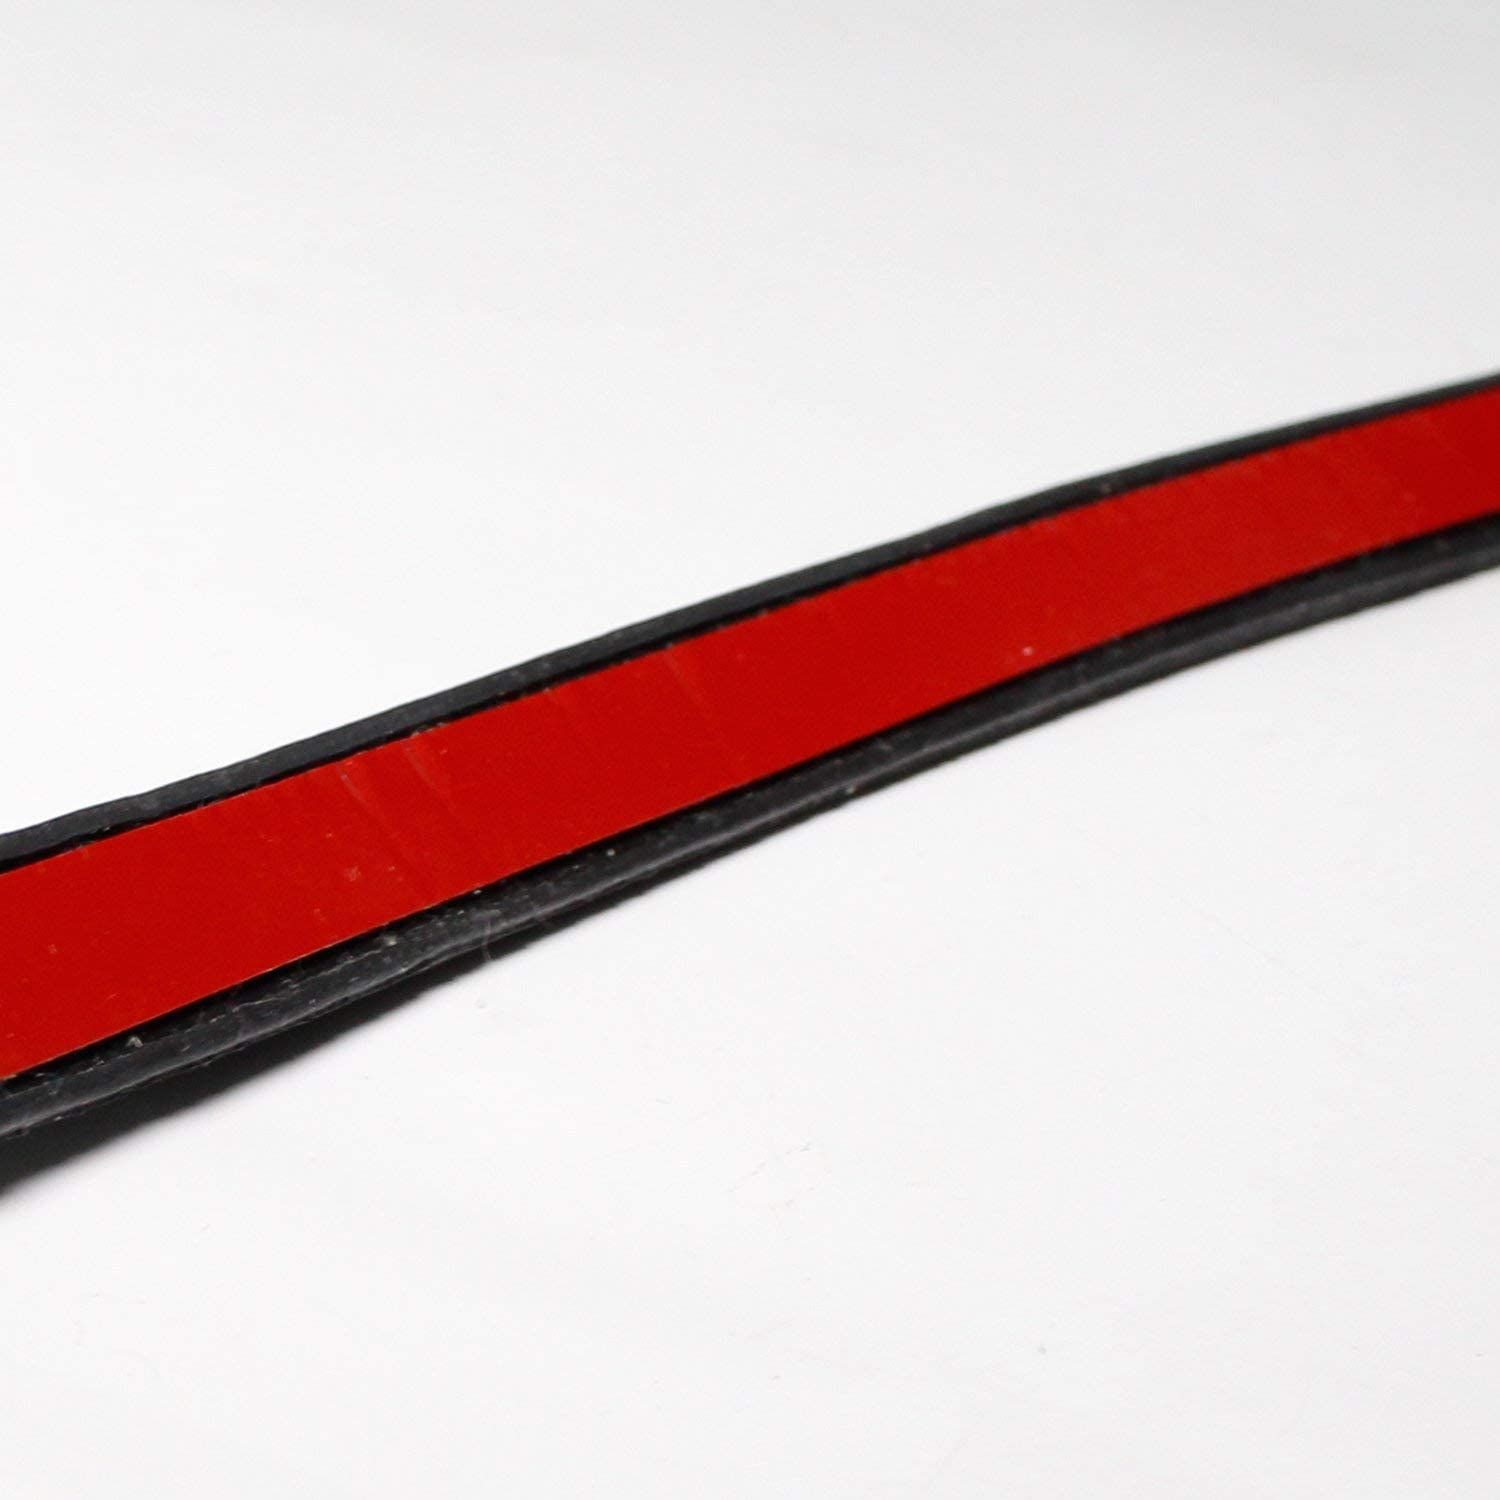 Sealing Rubber Strip Trim New Style Auto L Shape Adhesive Anti-dust Noise Control Protective Door Edge Seal Black 10ft